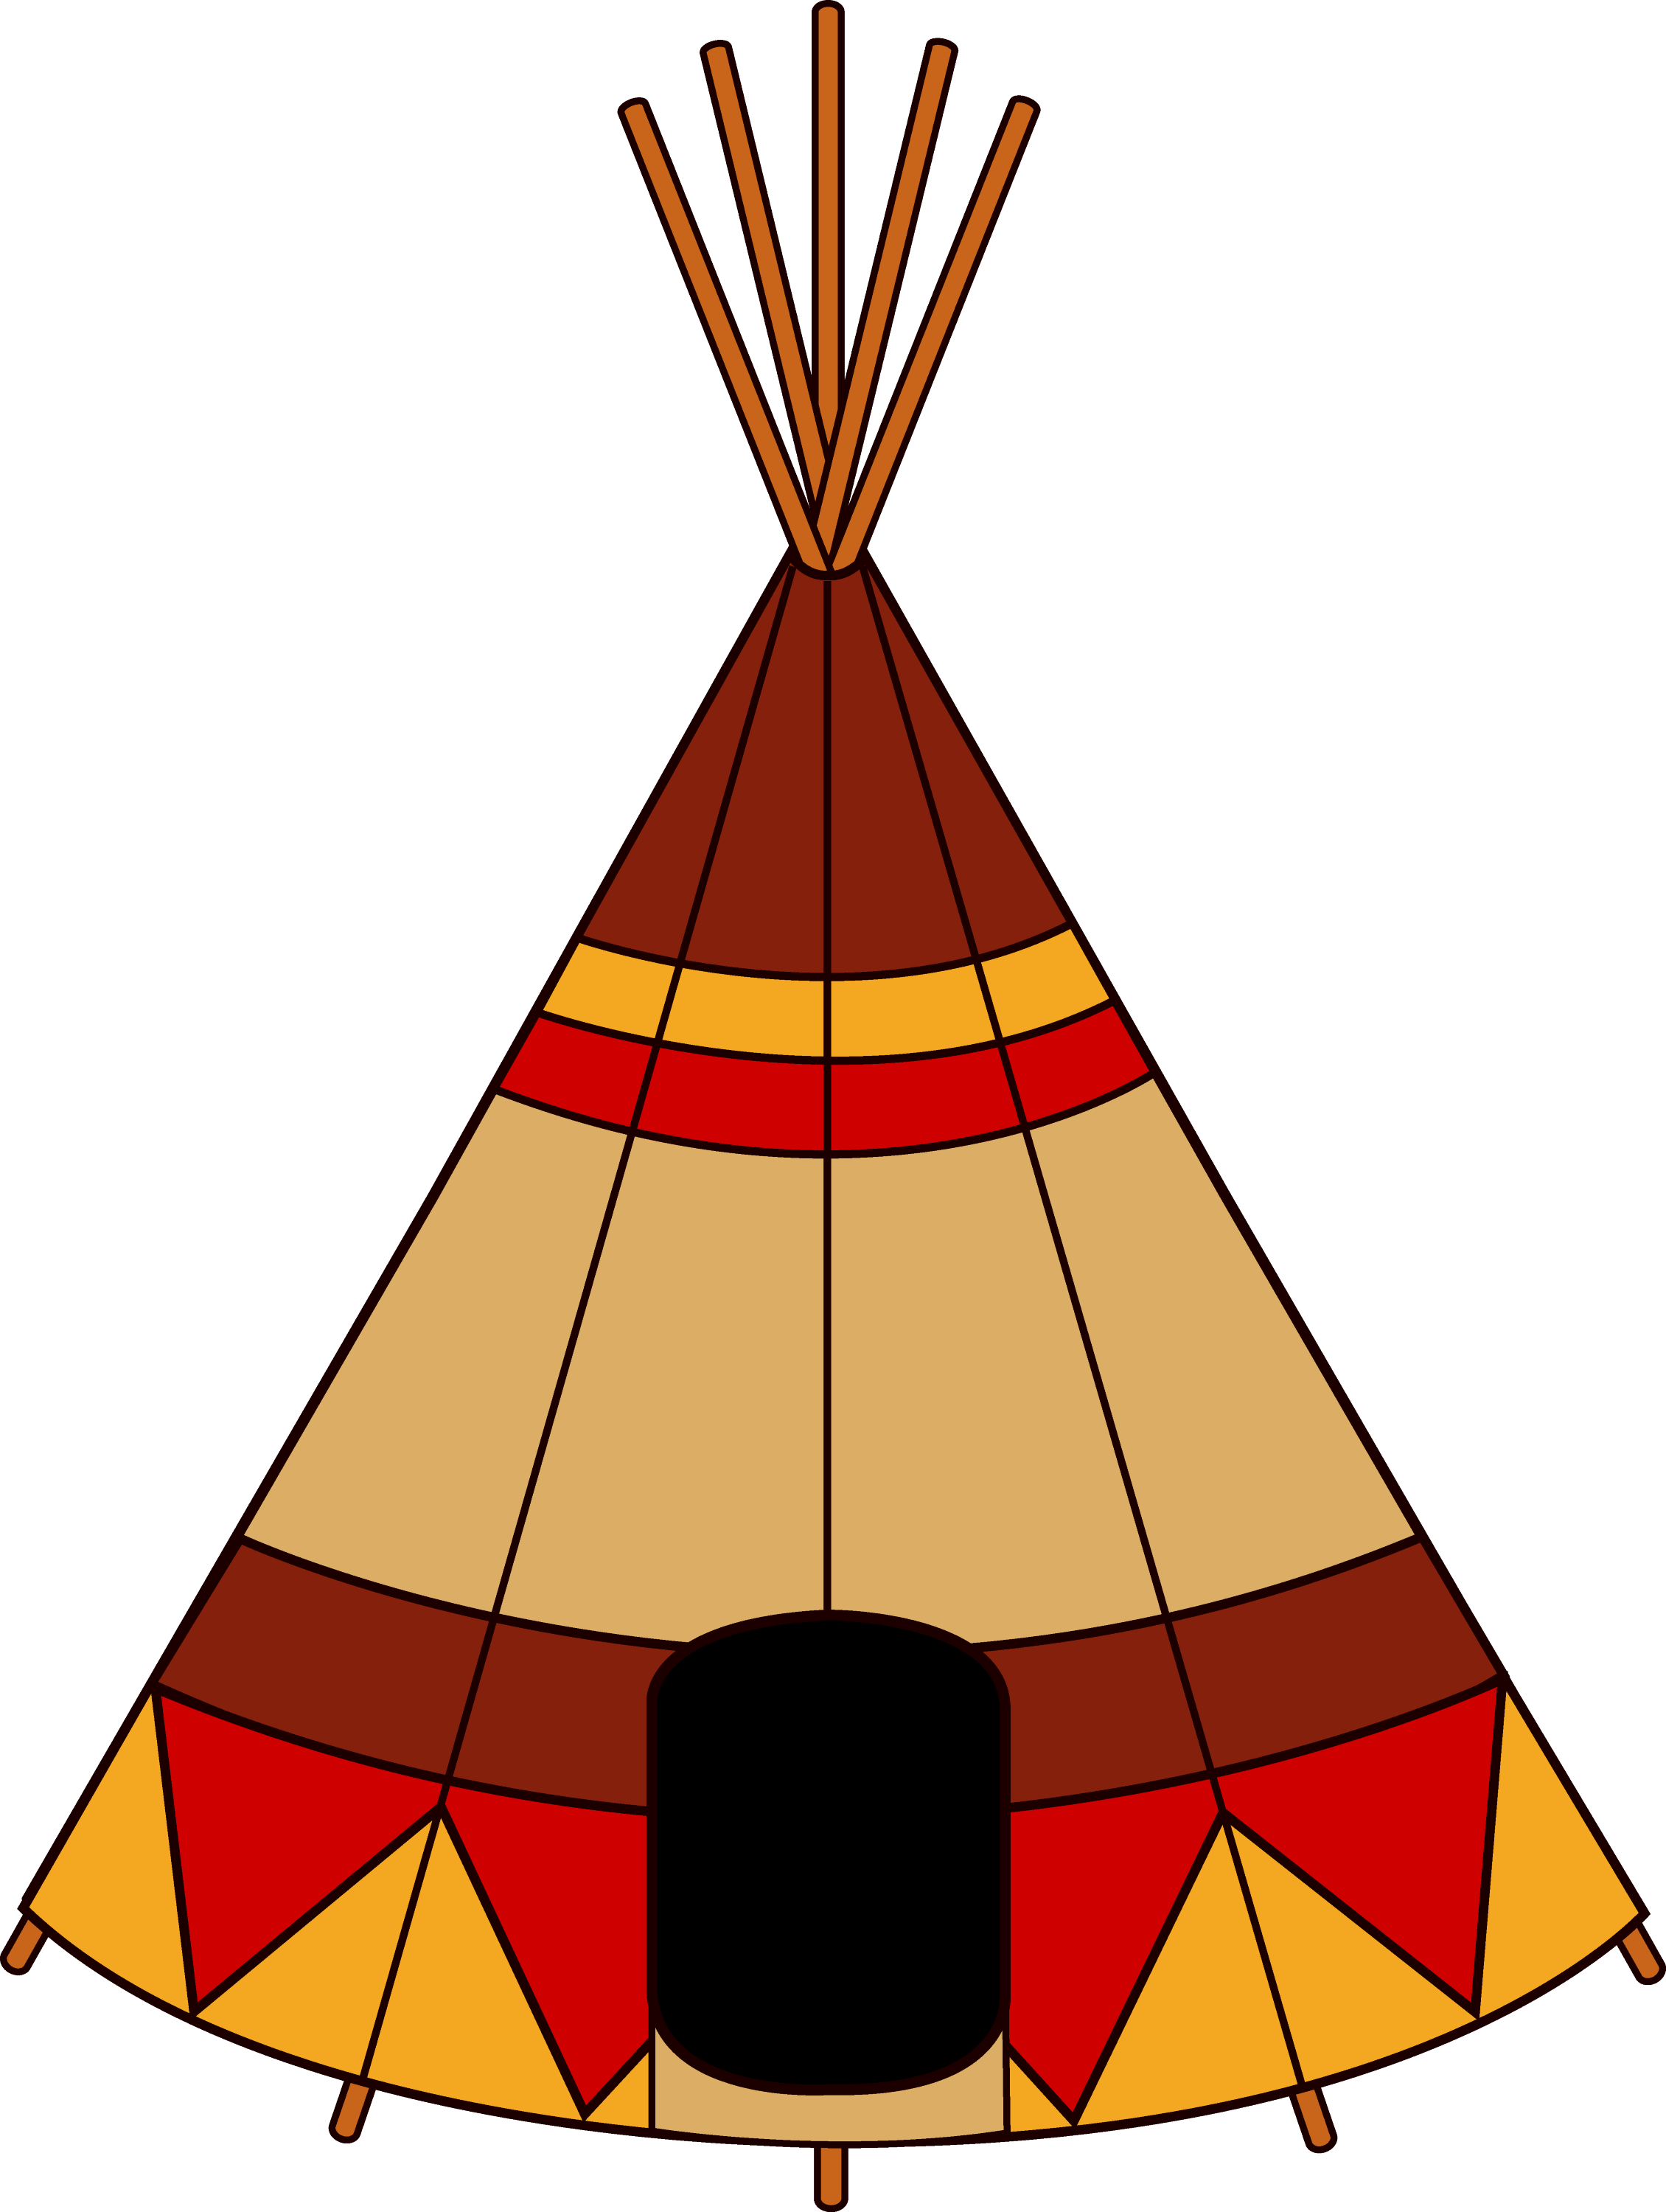 native american teepee free clip art rh sweetclipart com native american clipart free native american clip art symbols